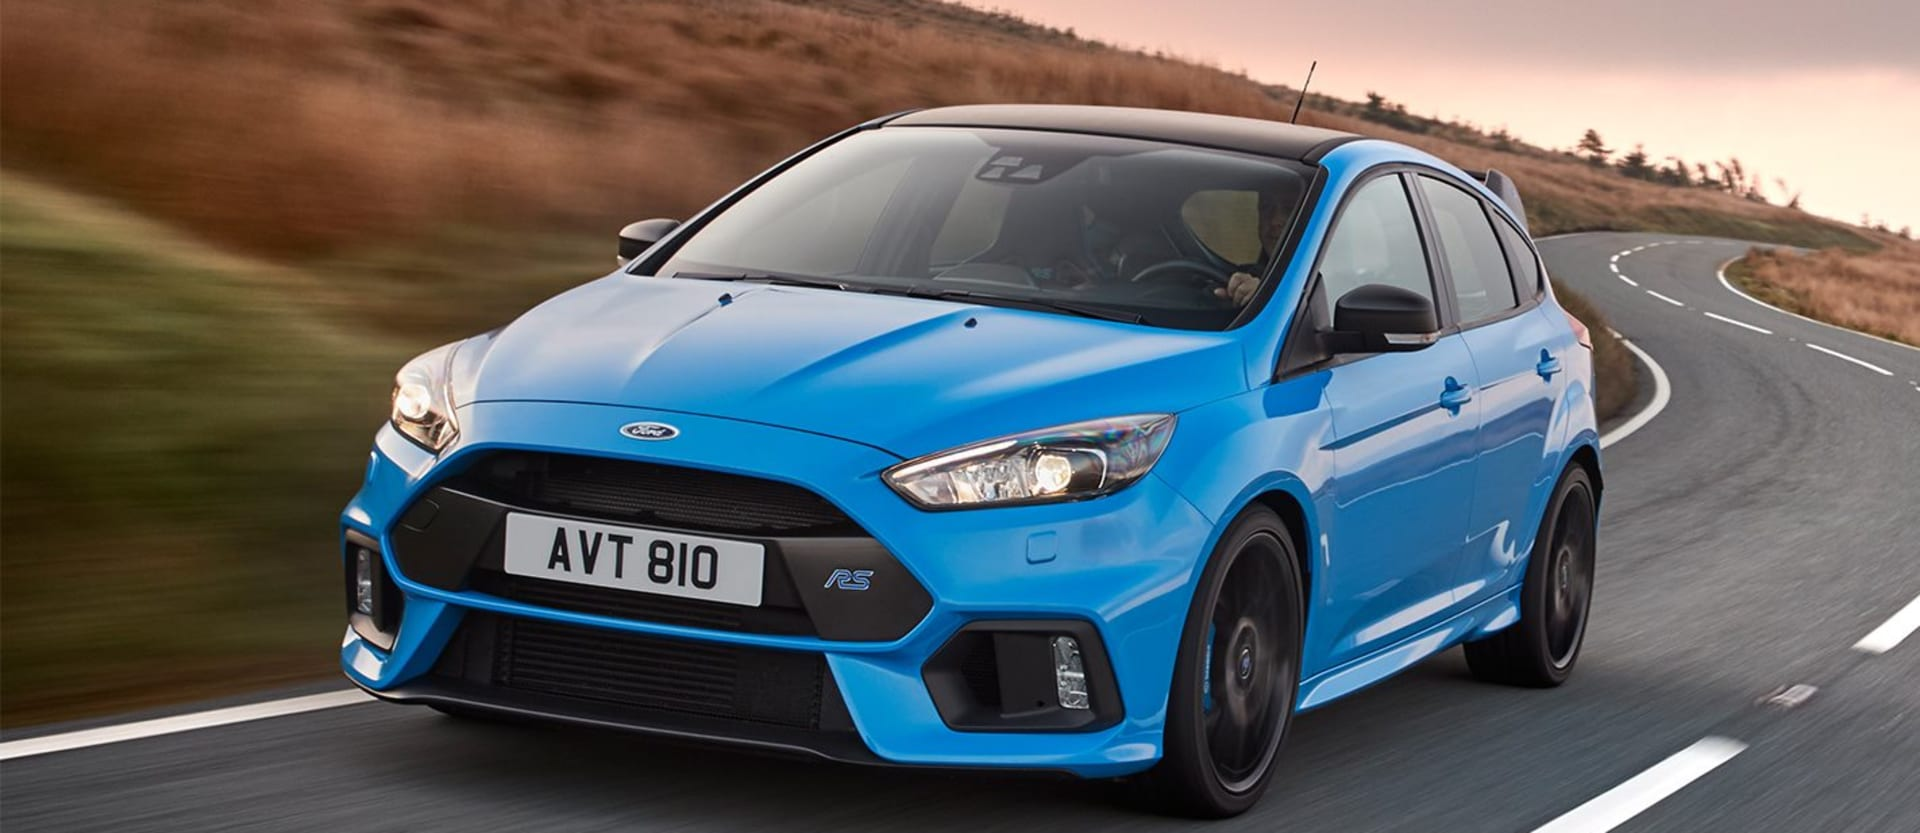 Focus RS Limited Edition confirmed for Australia